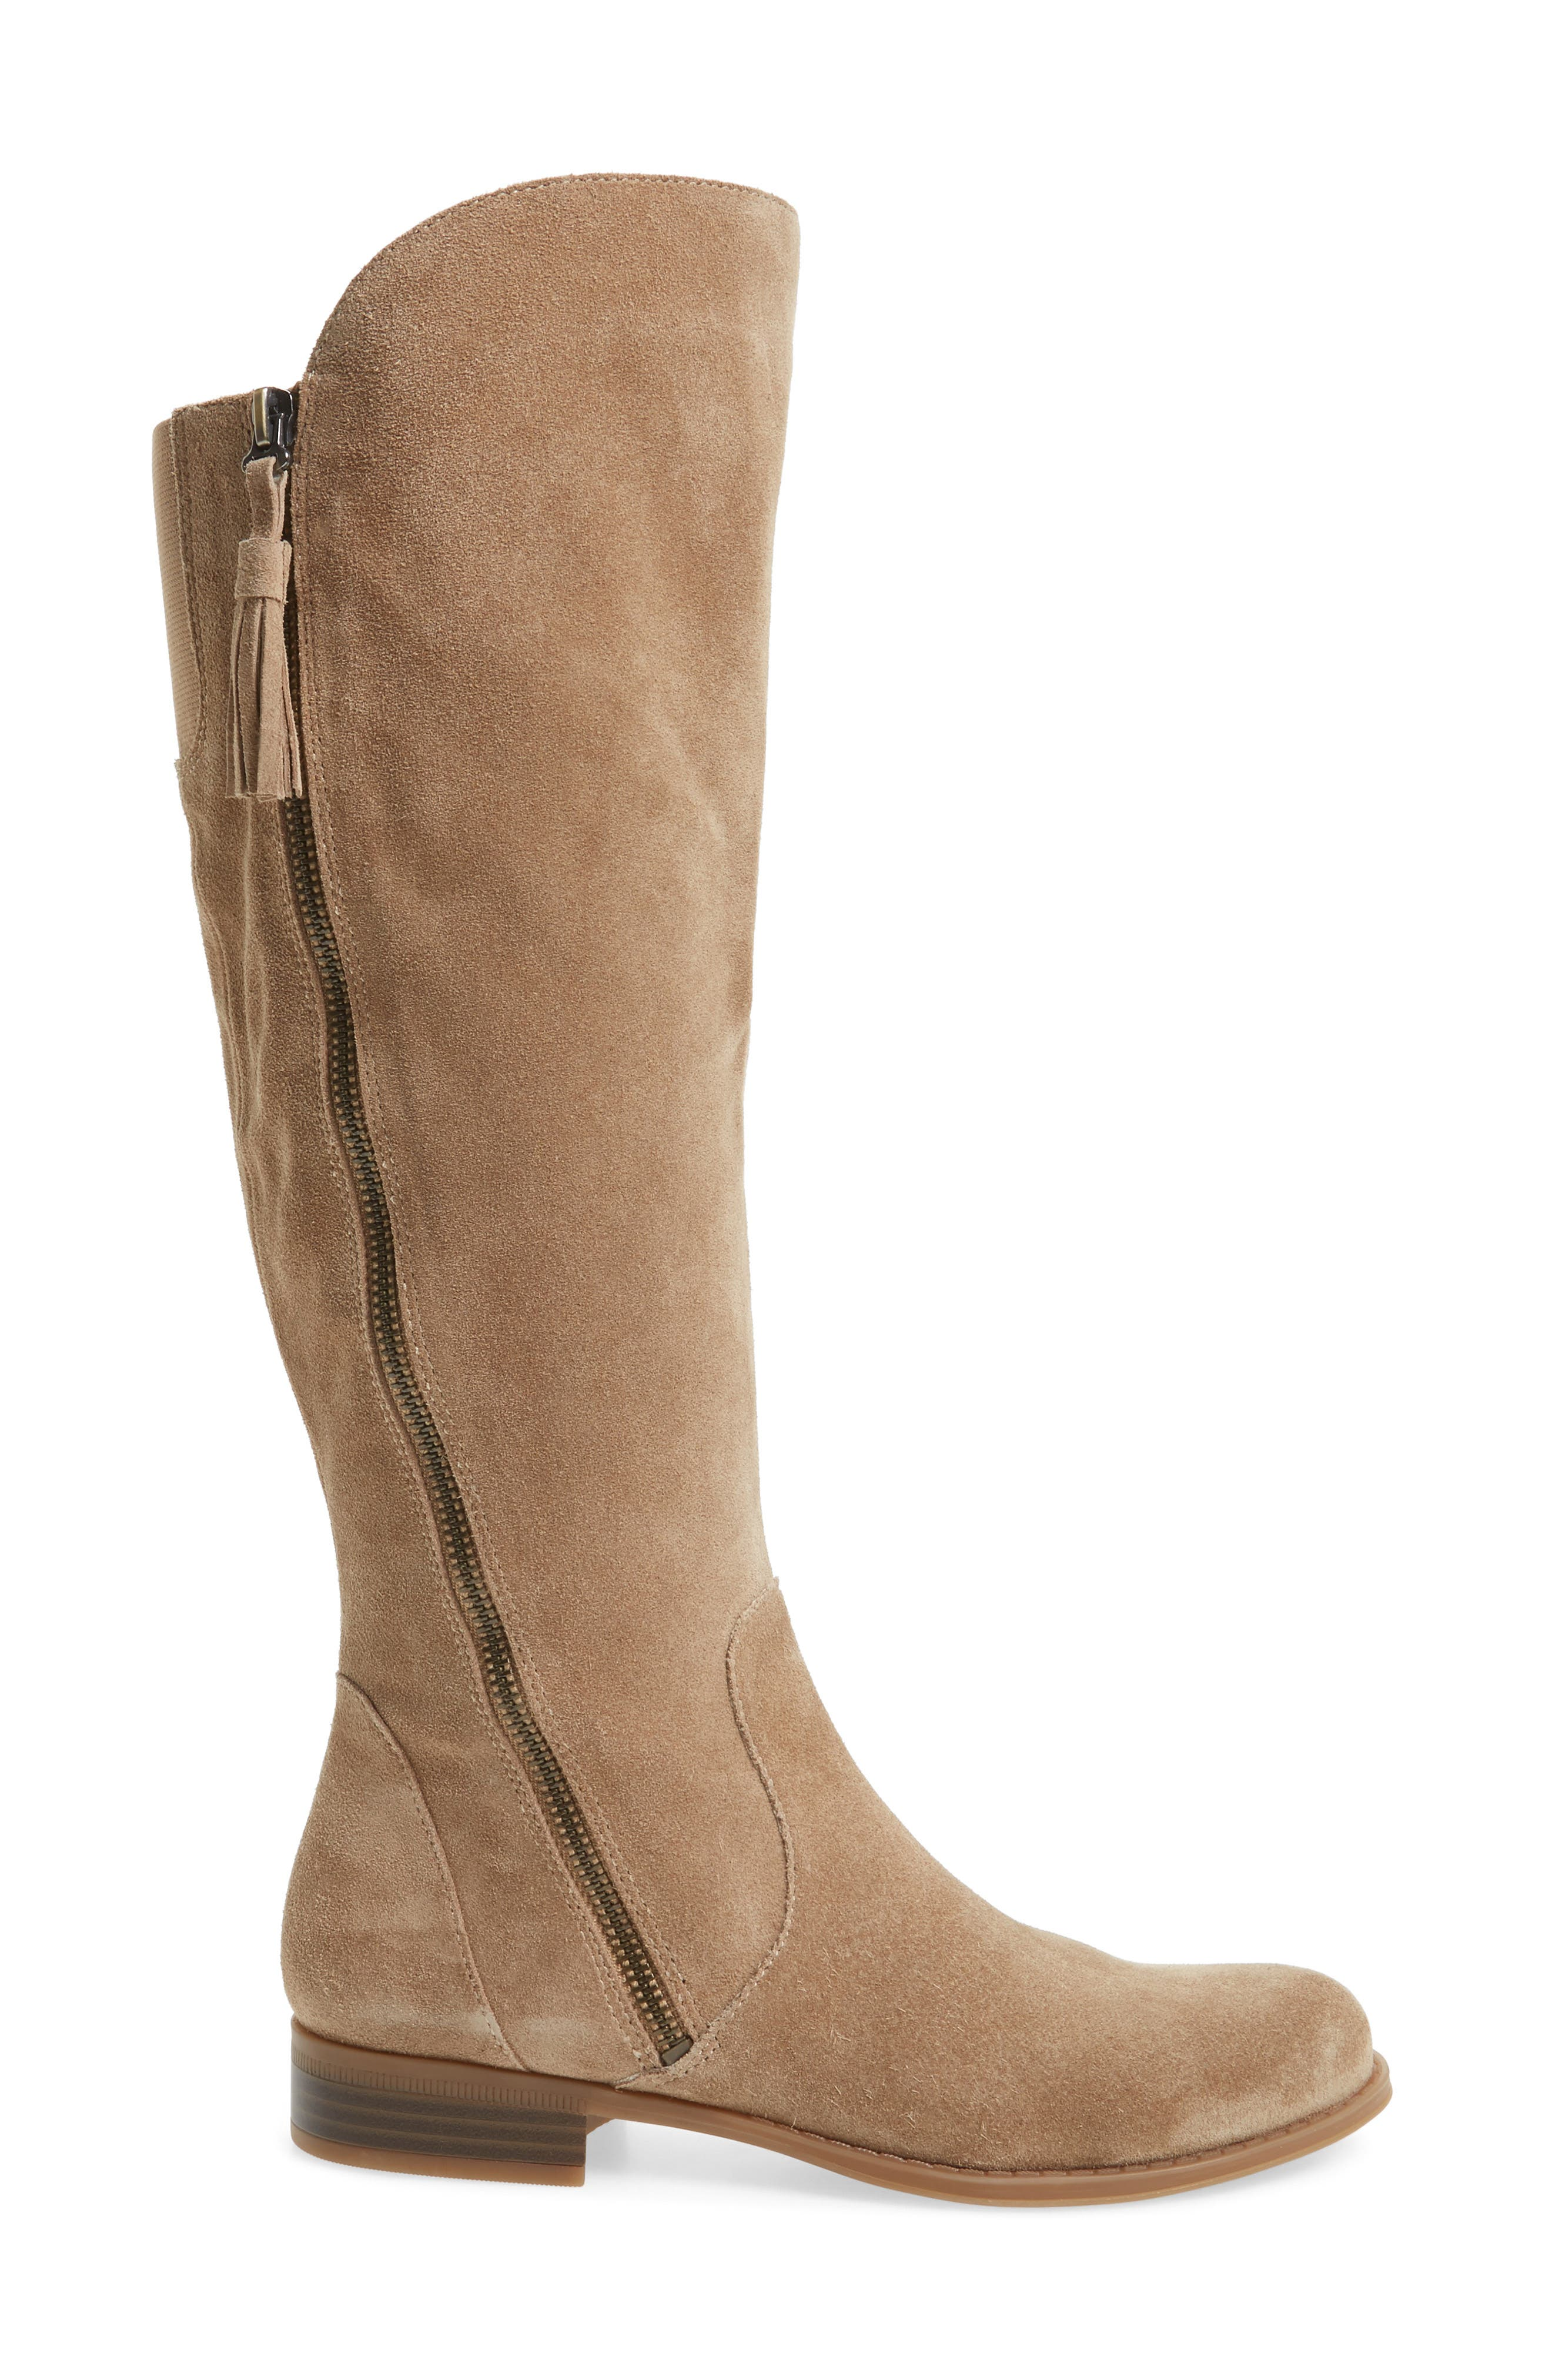 Jinnie Tall Boot,                             Alternate thumbnail 3, color,                             Oatmeal Suede